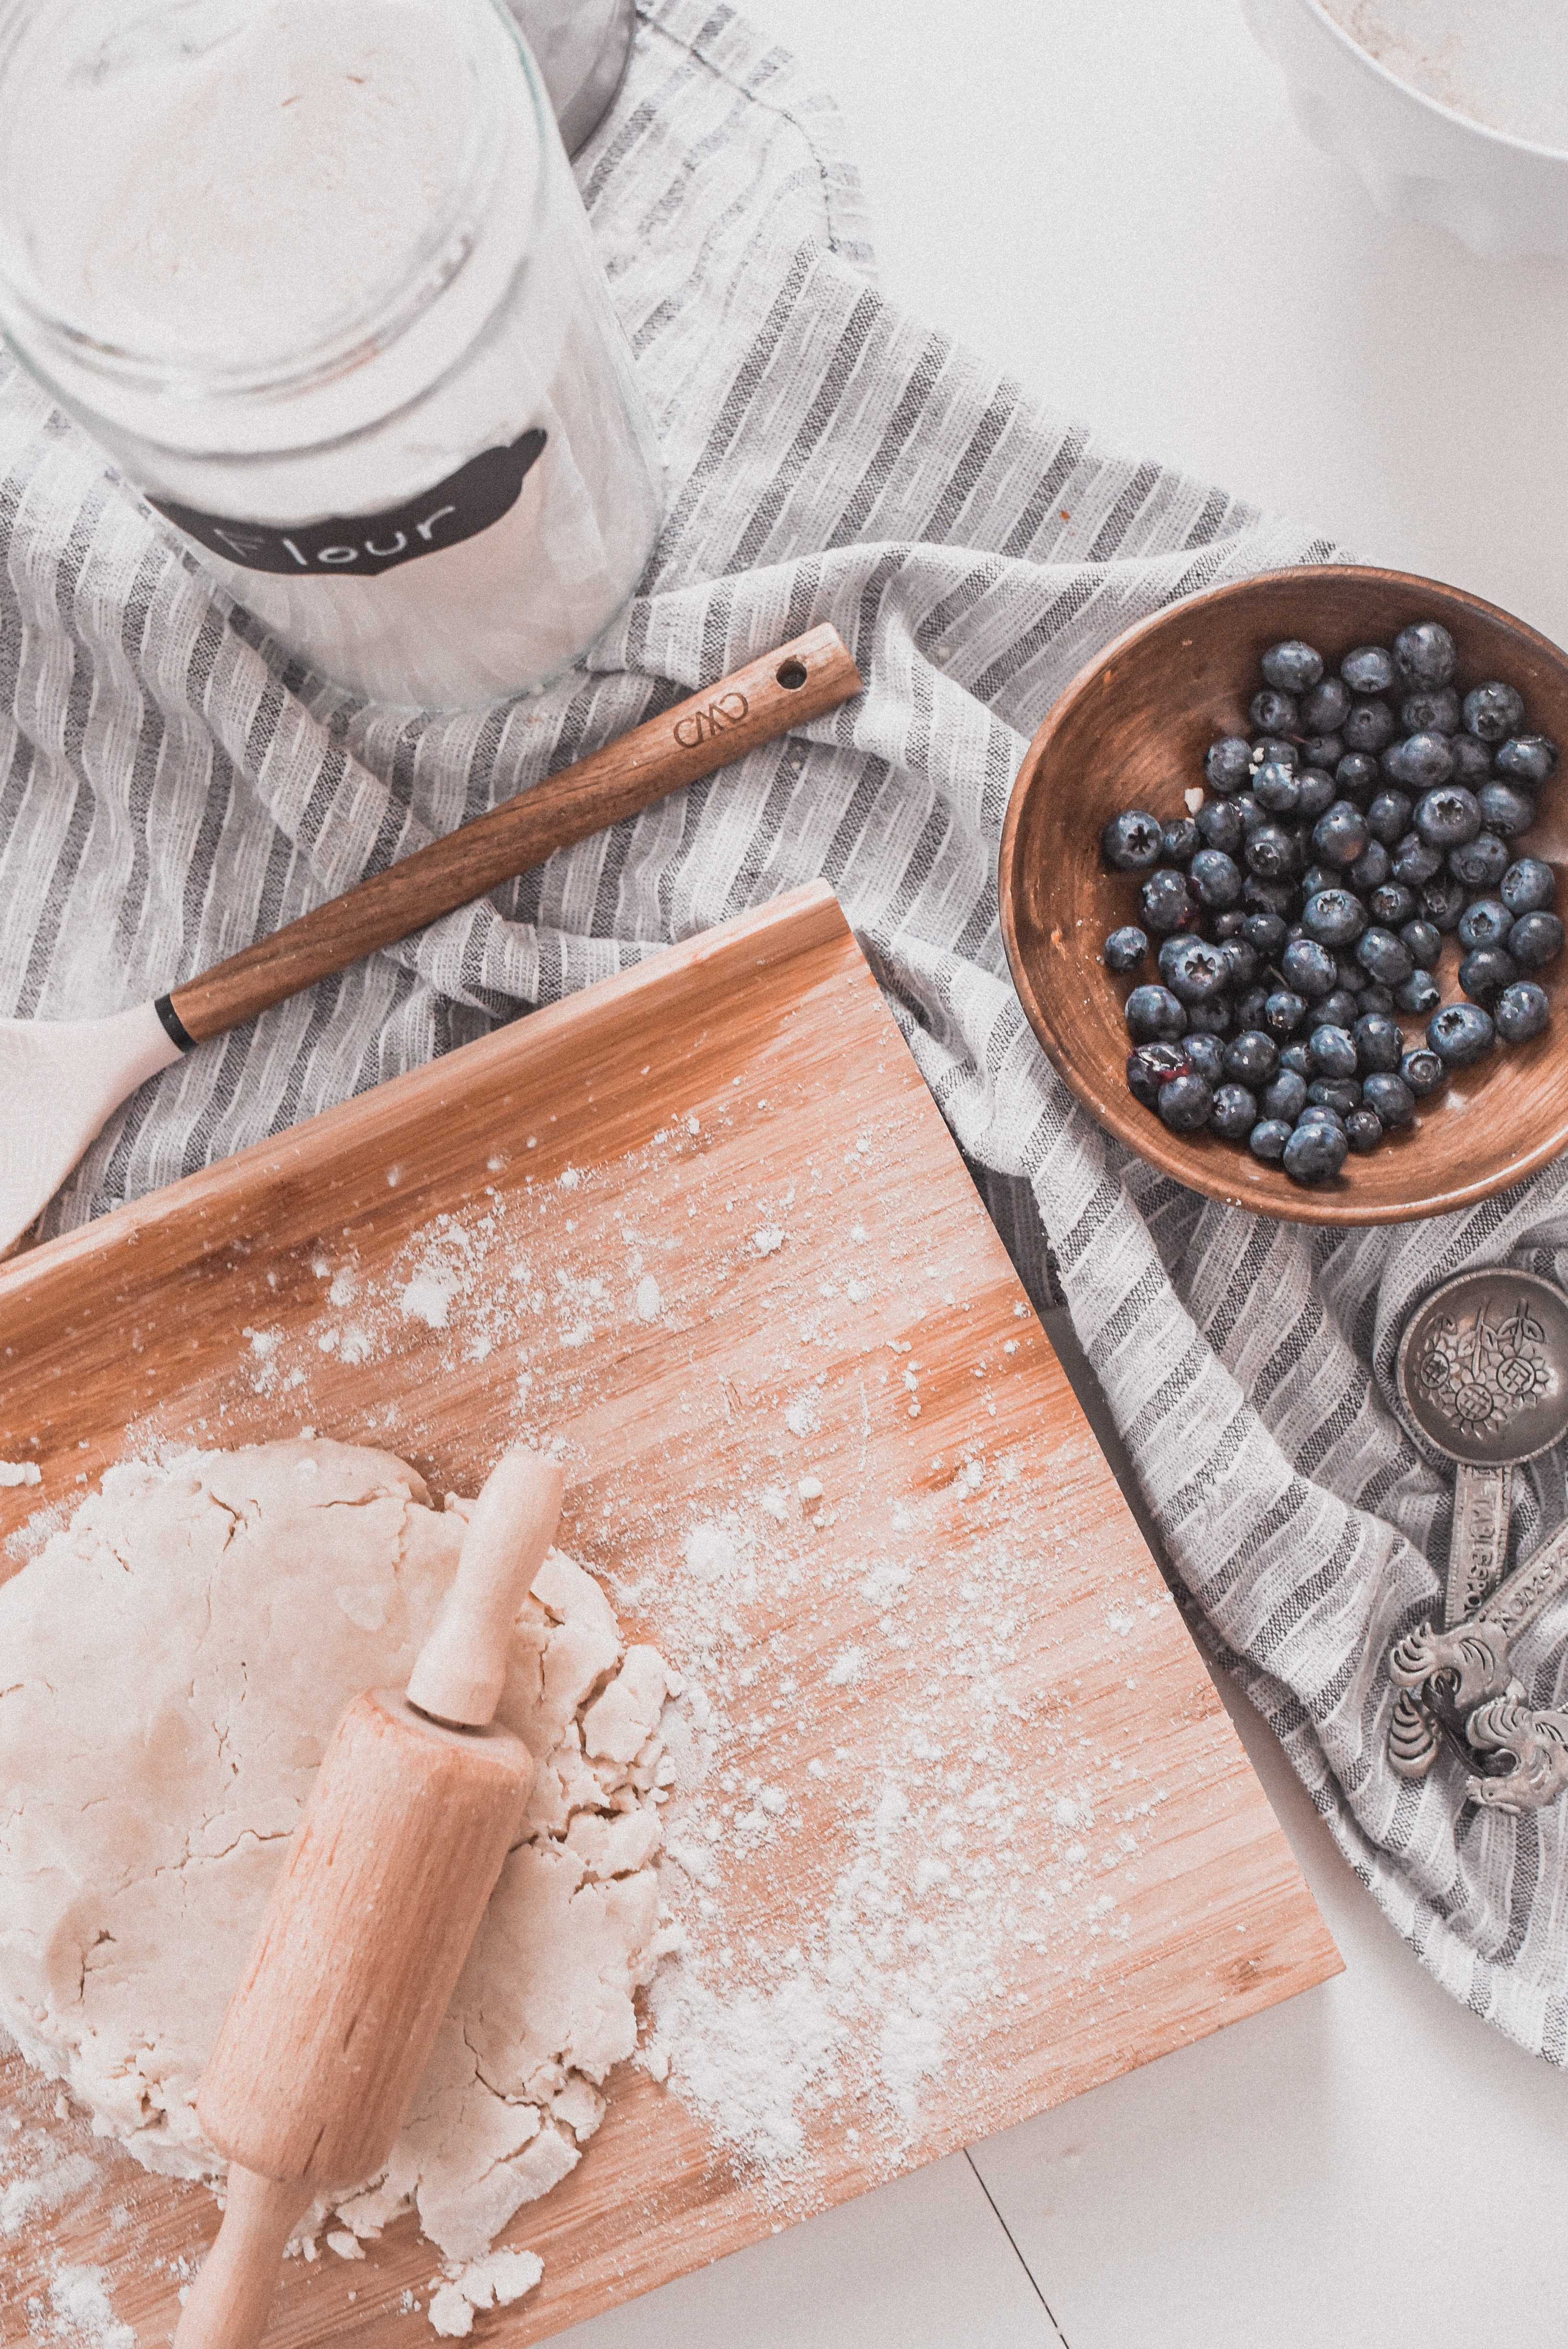 115987 download wallpaper Food, Test, Flour, Recipe, Prescription, Kitchen, Berries screensavers and pictures for free